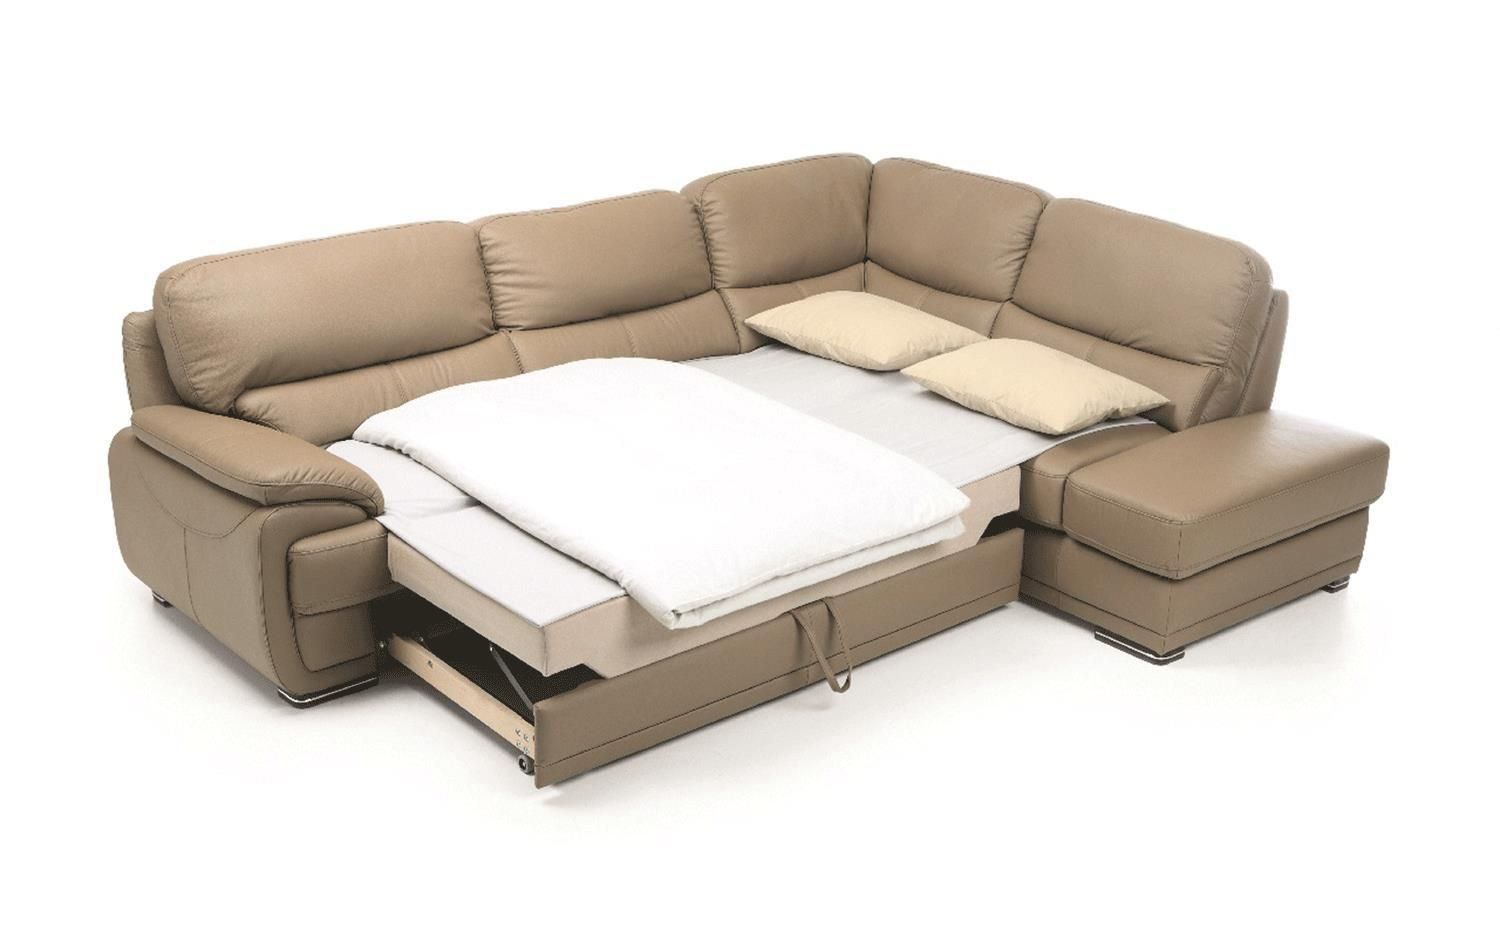 Argento Sectional Sofa In 2020 Sofa Bed With Storage Leather Sectional Sofa Grey Sectional Sofa